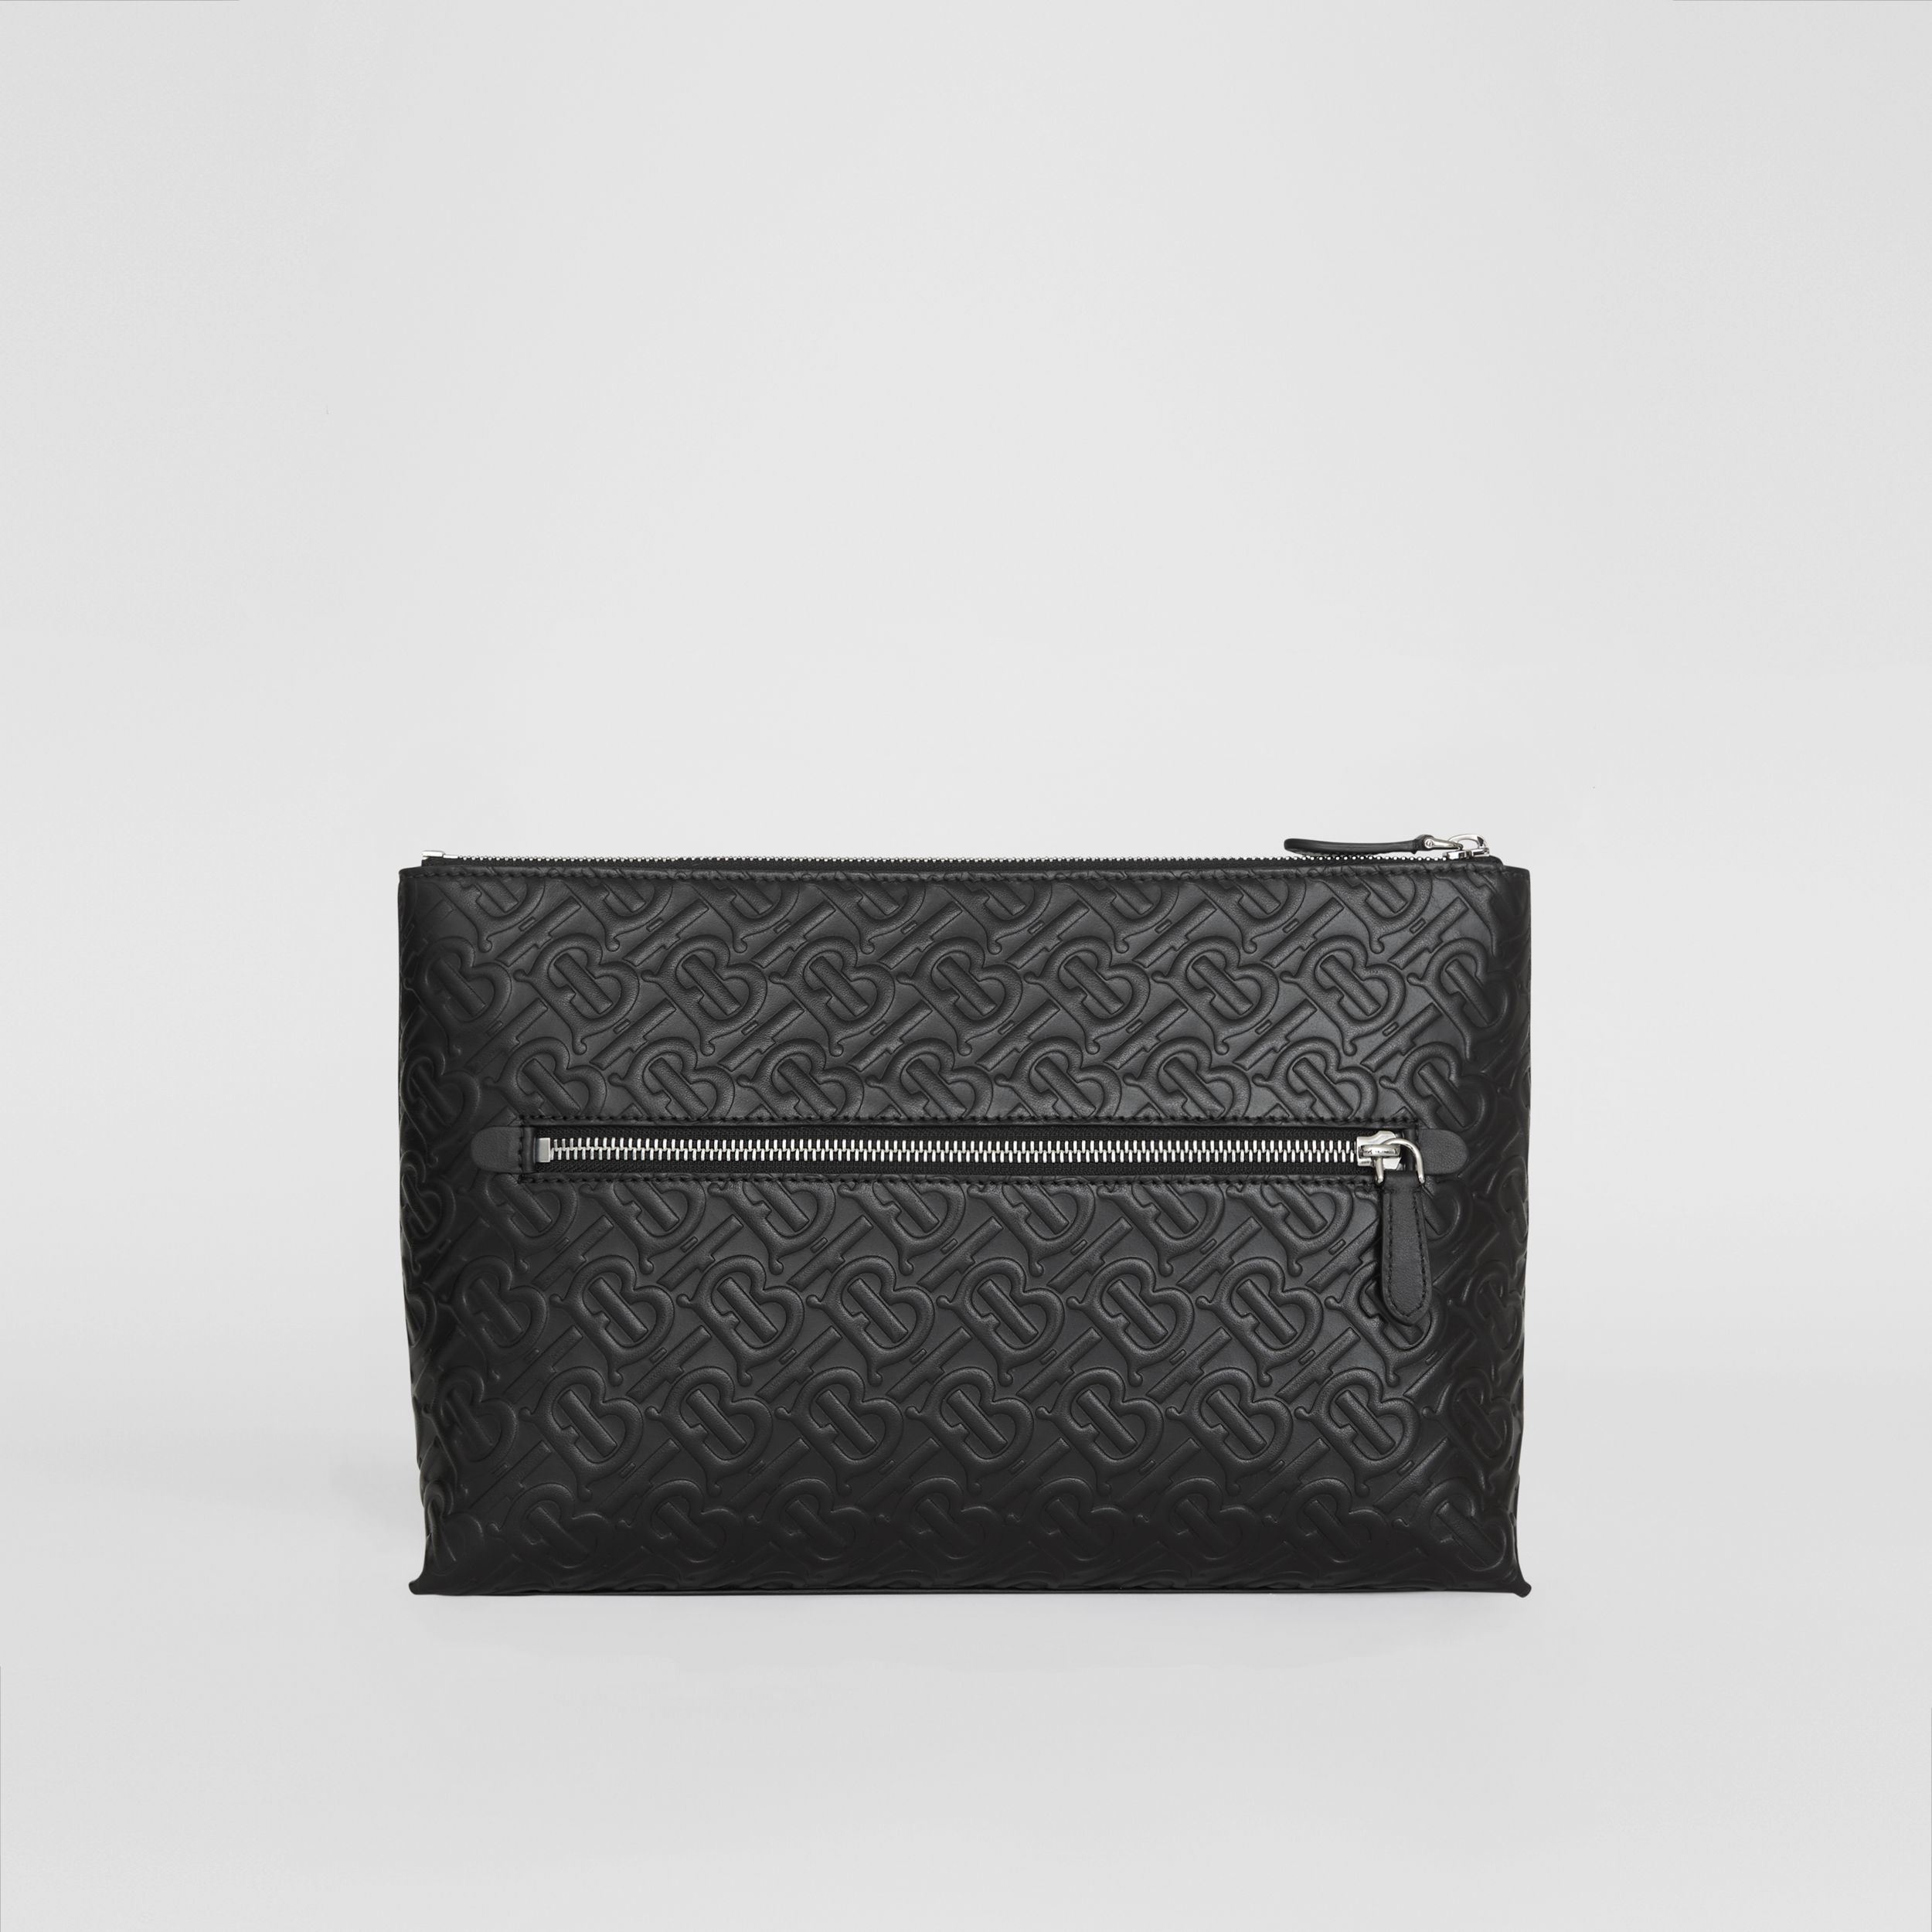 Monogram Leather Zip Pouch in Black | Burberry - 1